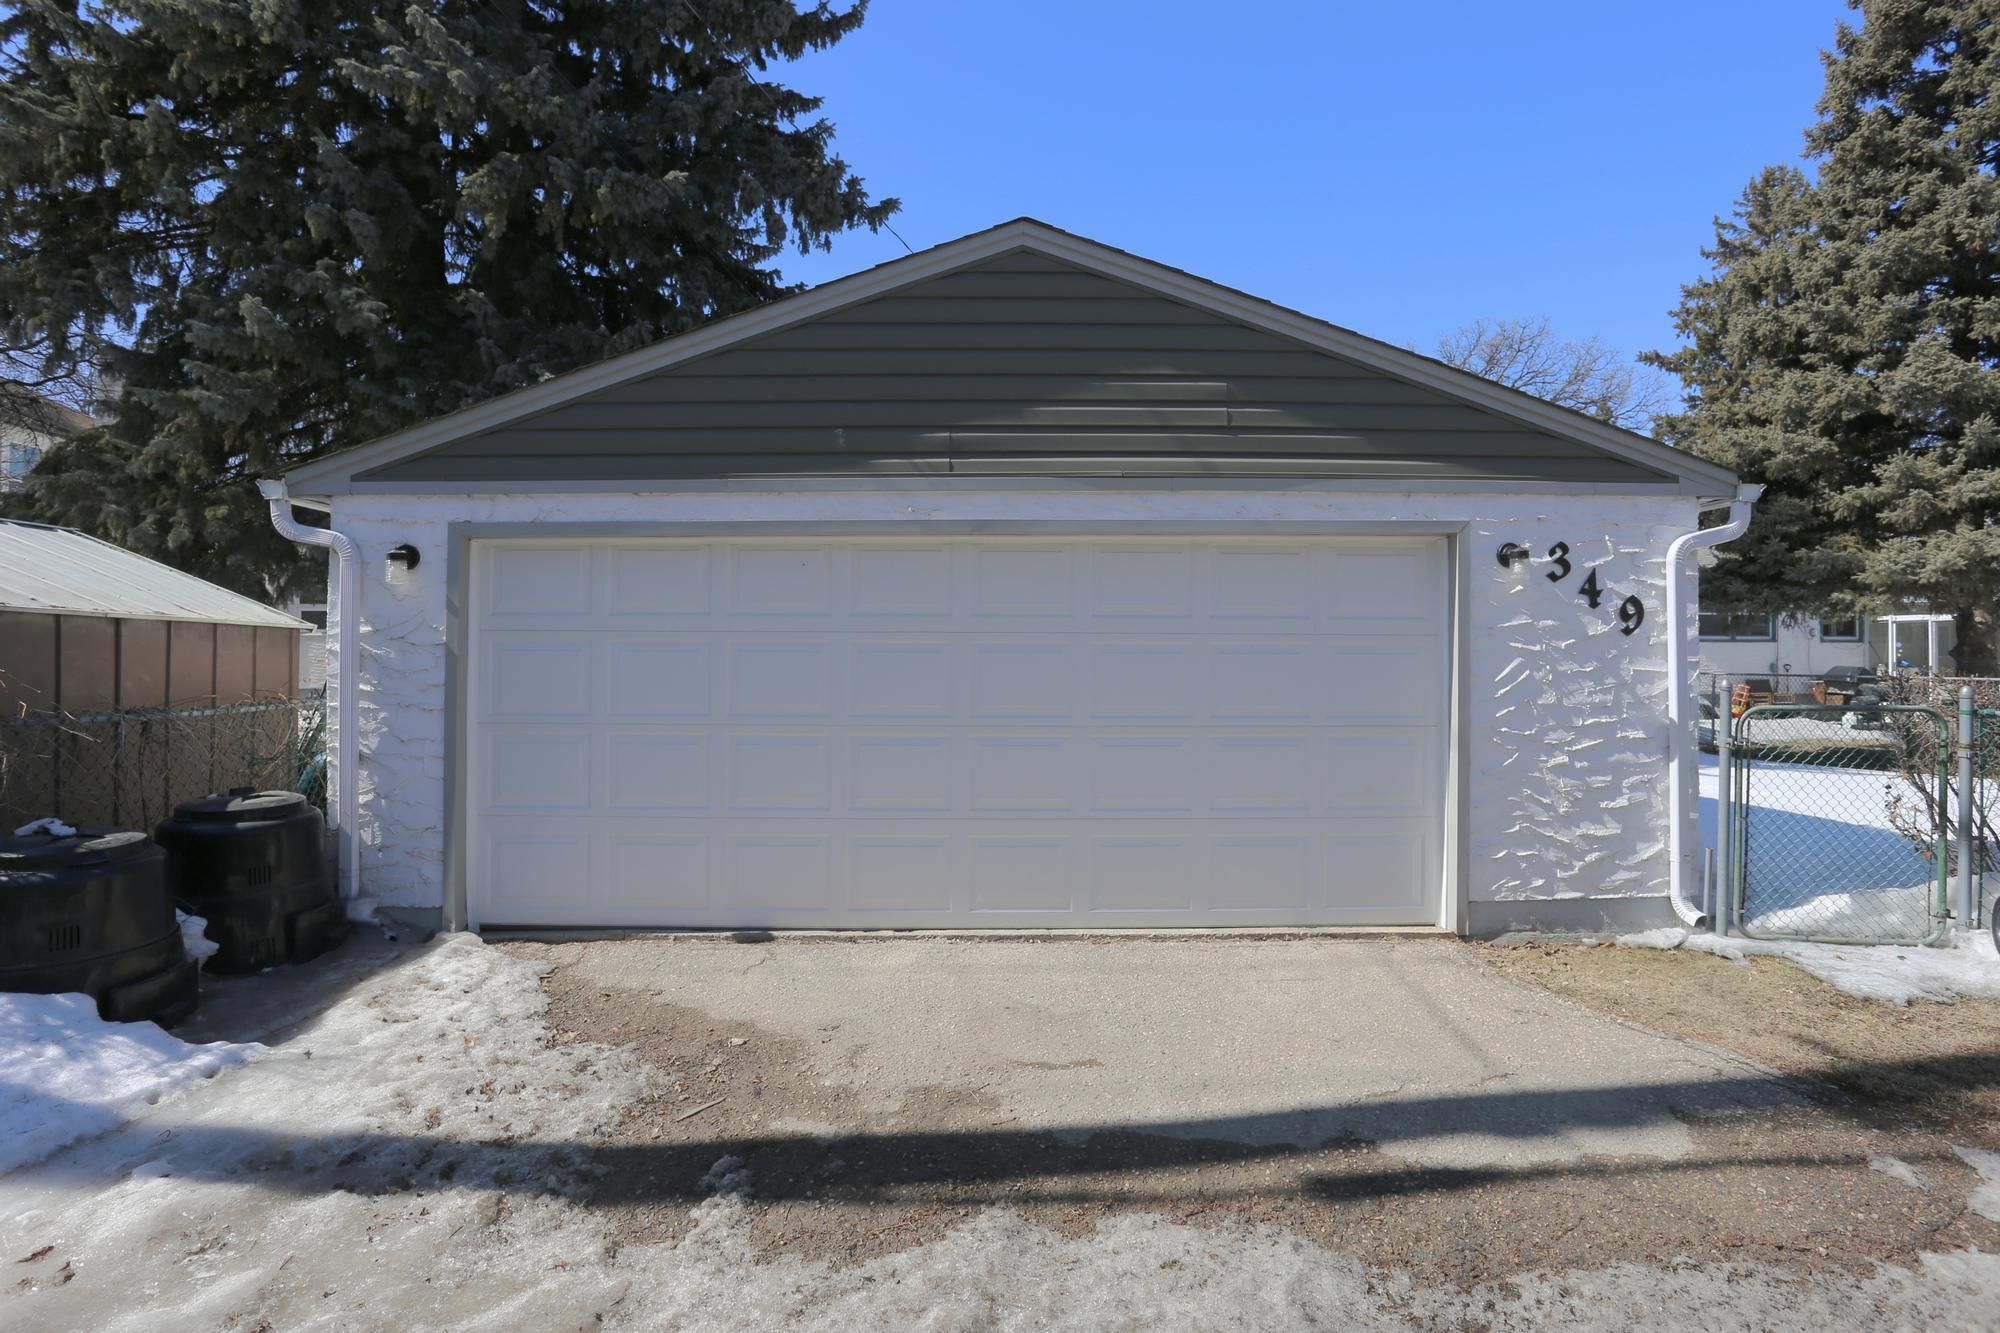 Photo 34: Photos: 349 Guildford Street in Winnipeg: St James Single Family Detached for sale (5E)  : MLS®# 1807654